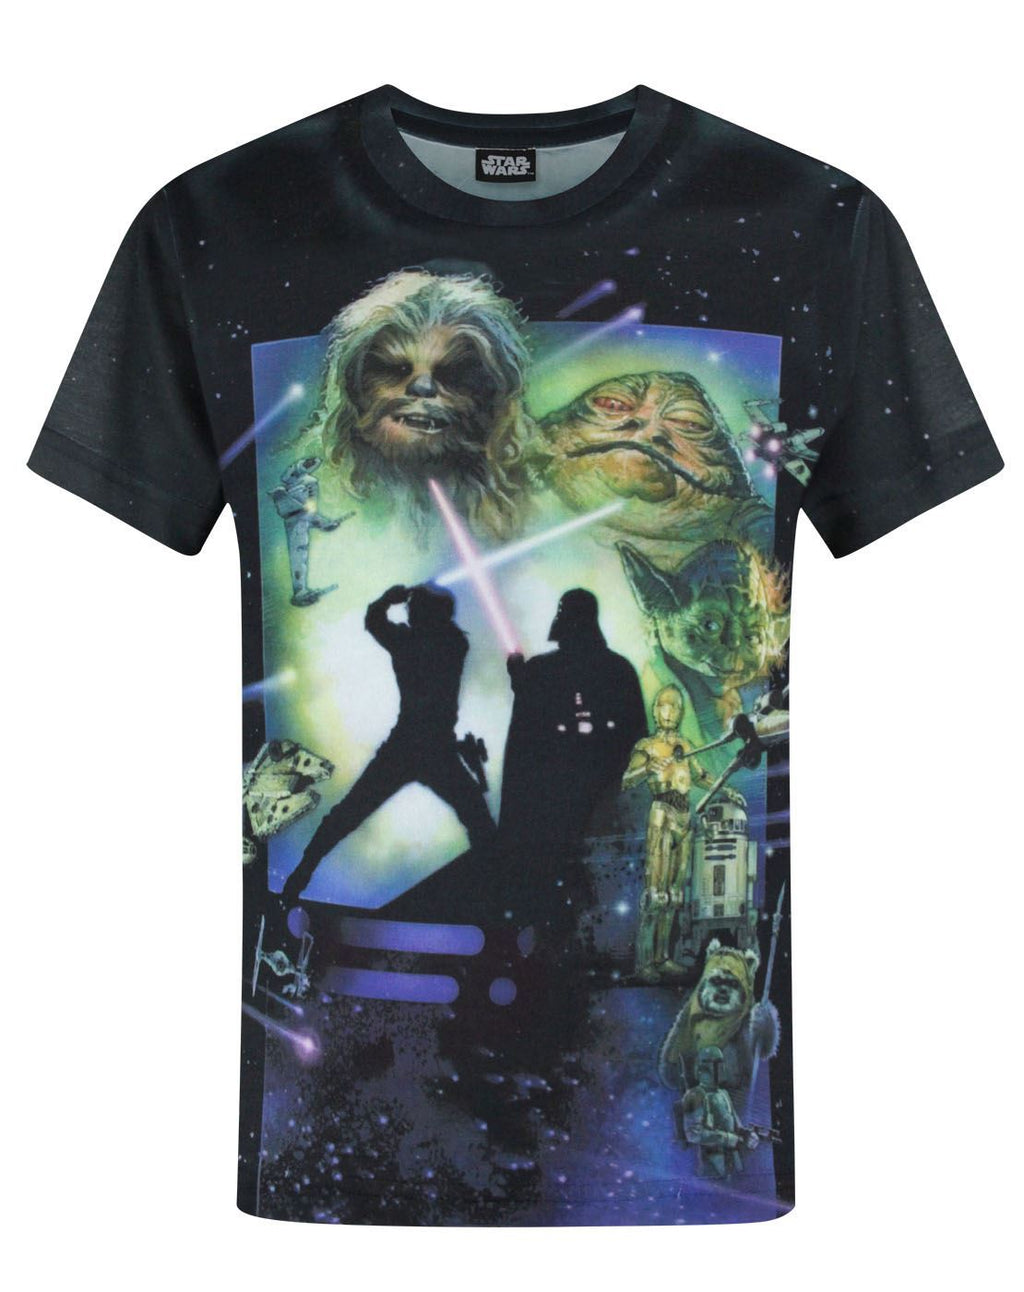 Star Wars Return Of The Jedi Sublimation Boy's T-Shirt